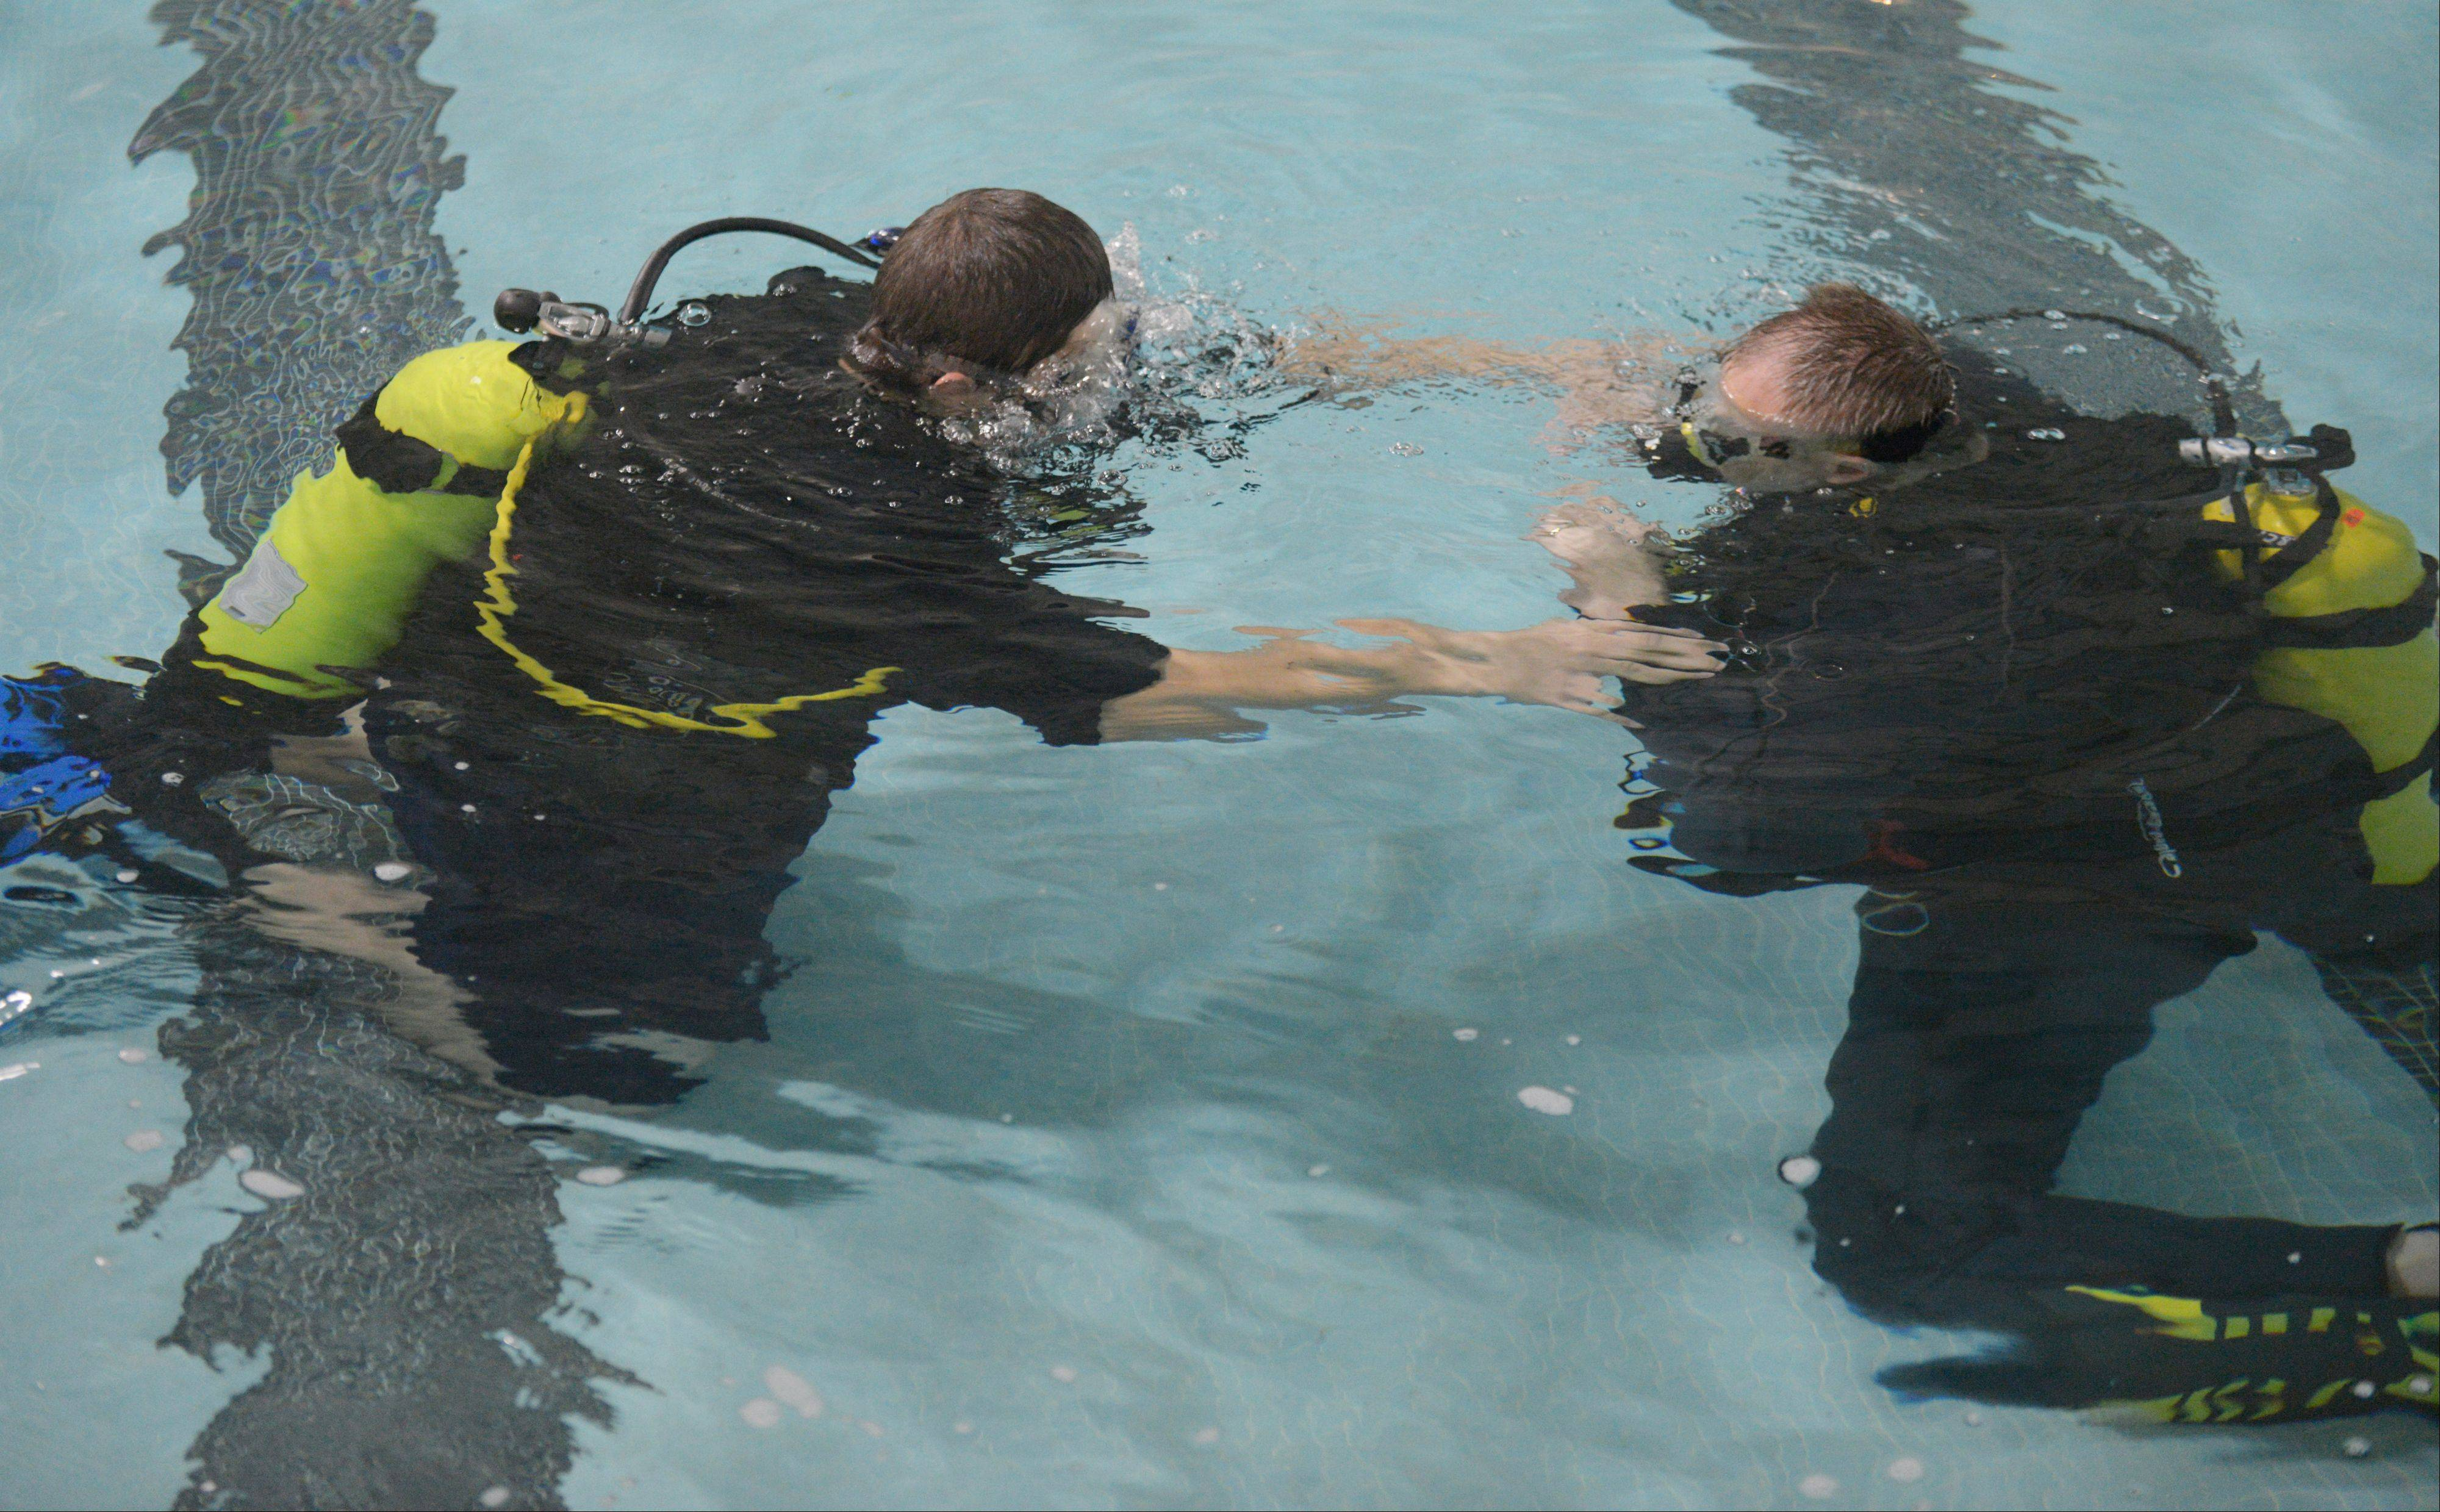 Pete Livorsi of Buffalo Grove, right, helps Neikos Fultz of Aurora begin to learn scuba diving Saturday in the East Aurora High School pool. Triple Threat Mentoring and S.T.A.R.S. International offered scuba lessons to about 15 urban teens who otherwise may never experience such an expensive hobby.